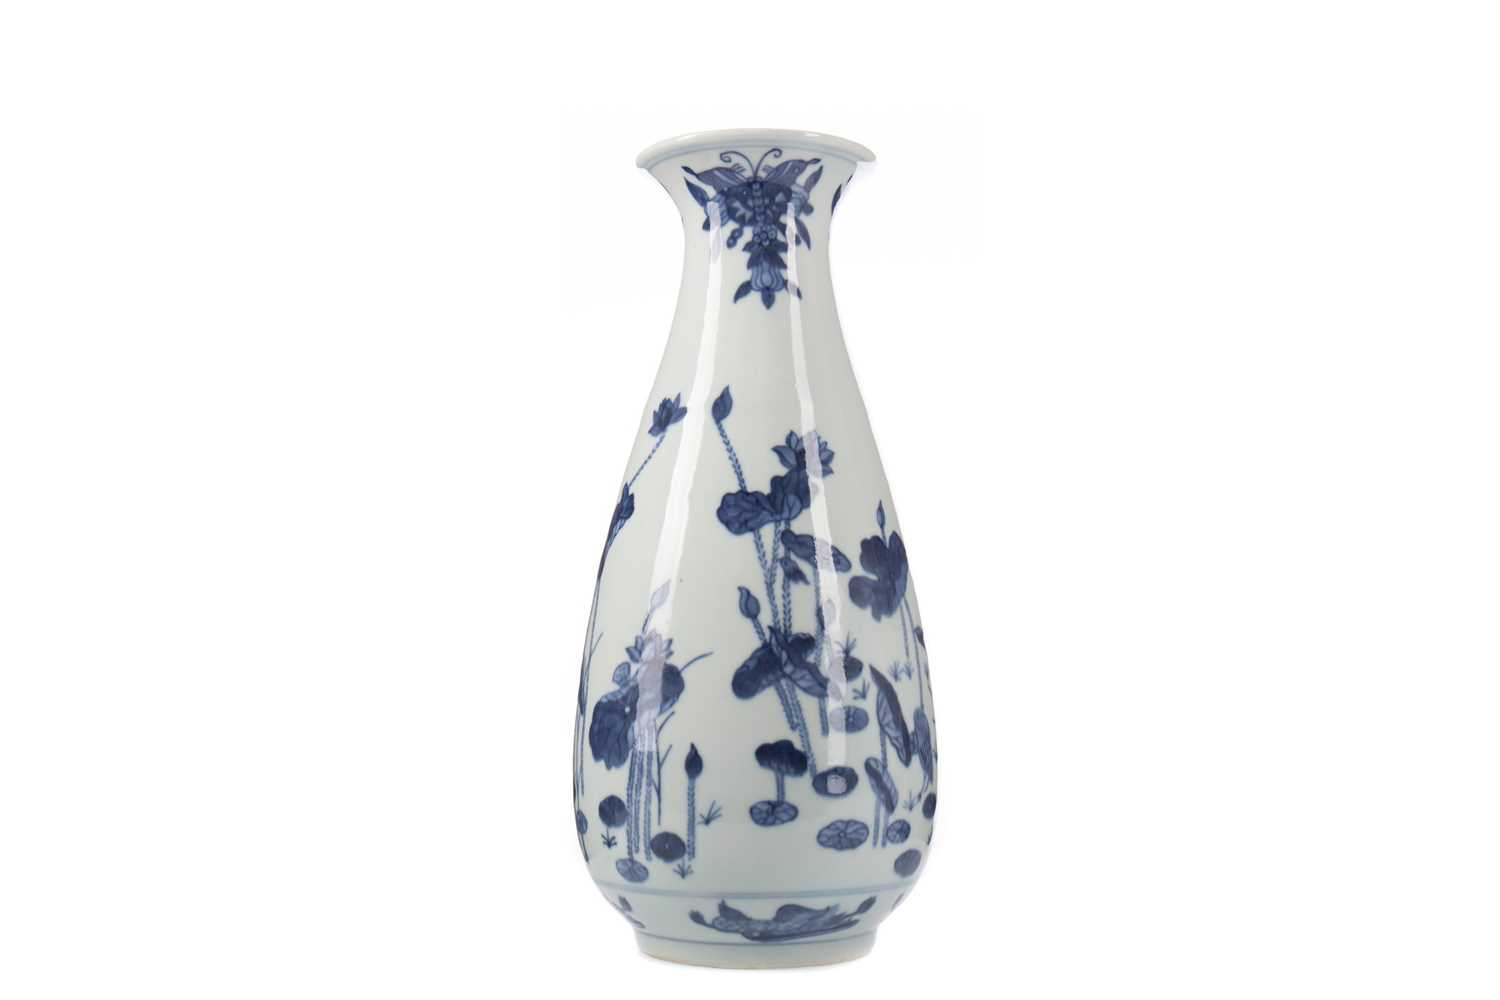 Lot 1656 - A 20TH CENTURY CHINESE BLUE AND WHITE VASE